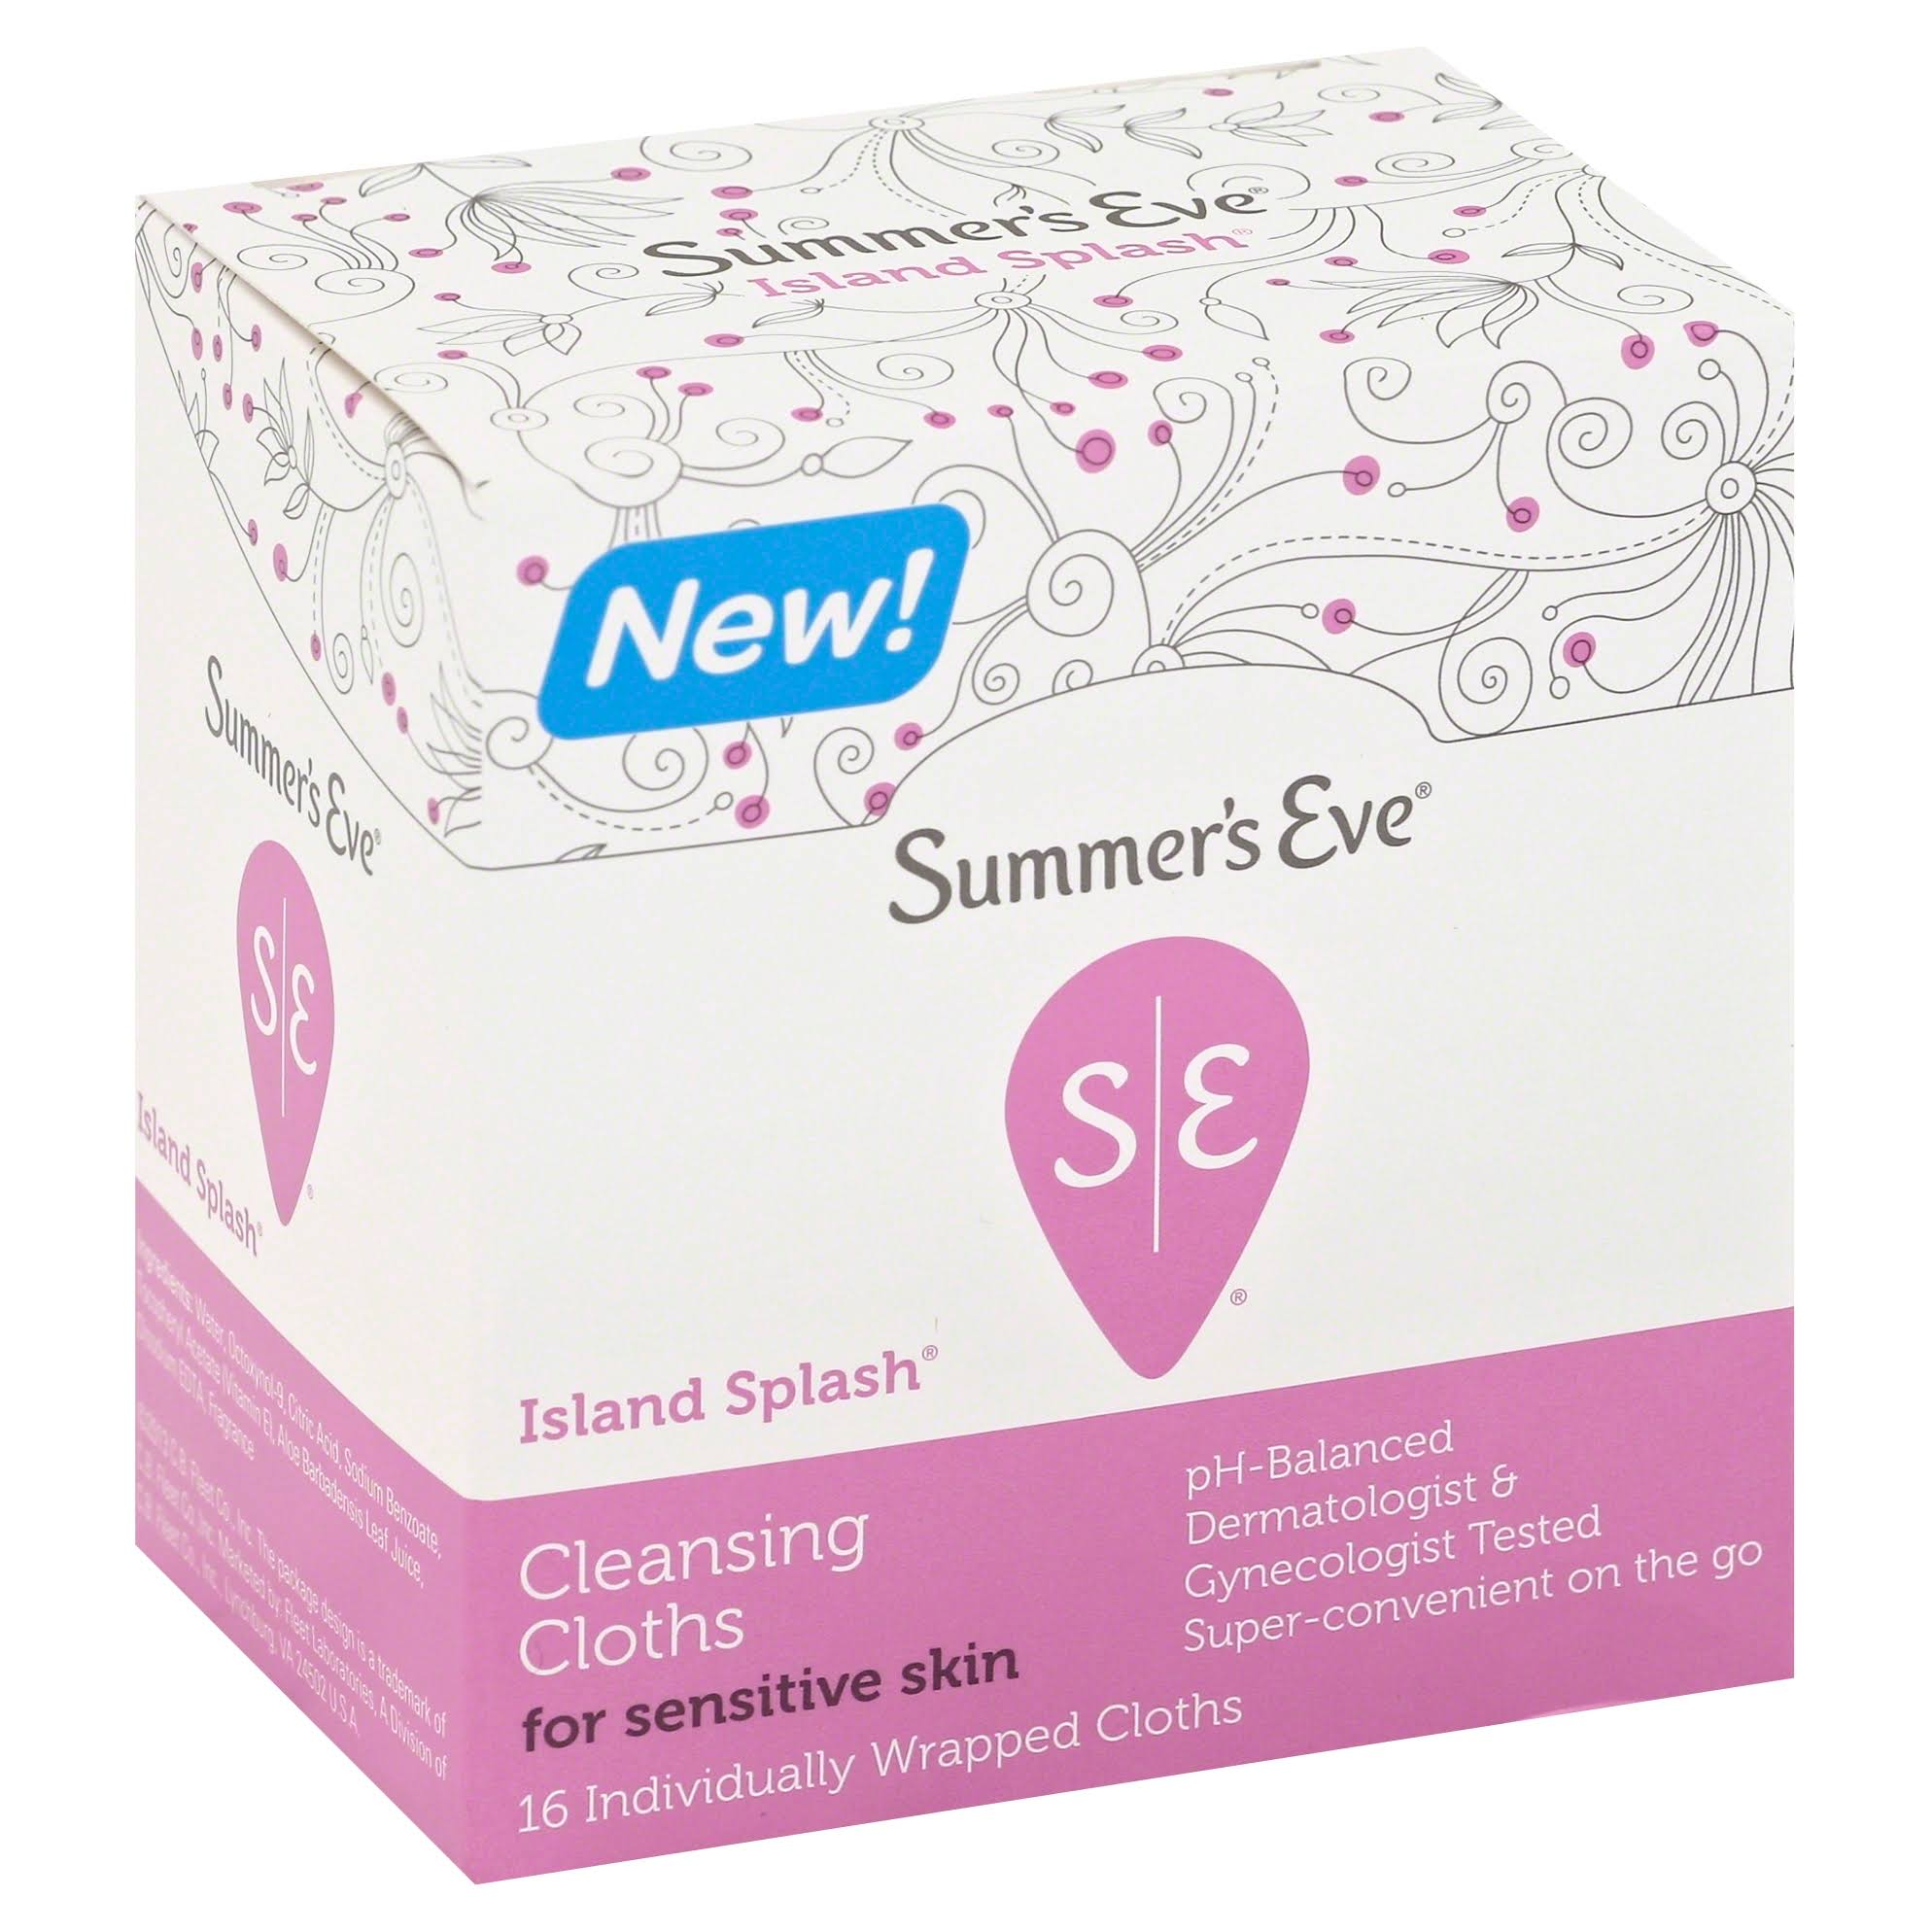 Summer's Eve Individually Cleansing Wrapped Cloths - Island Splash, 16 Pack